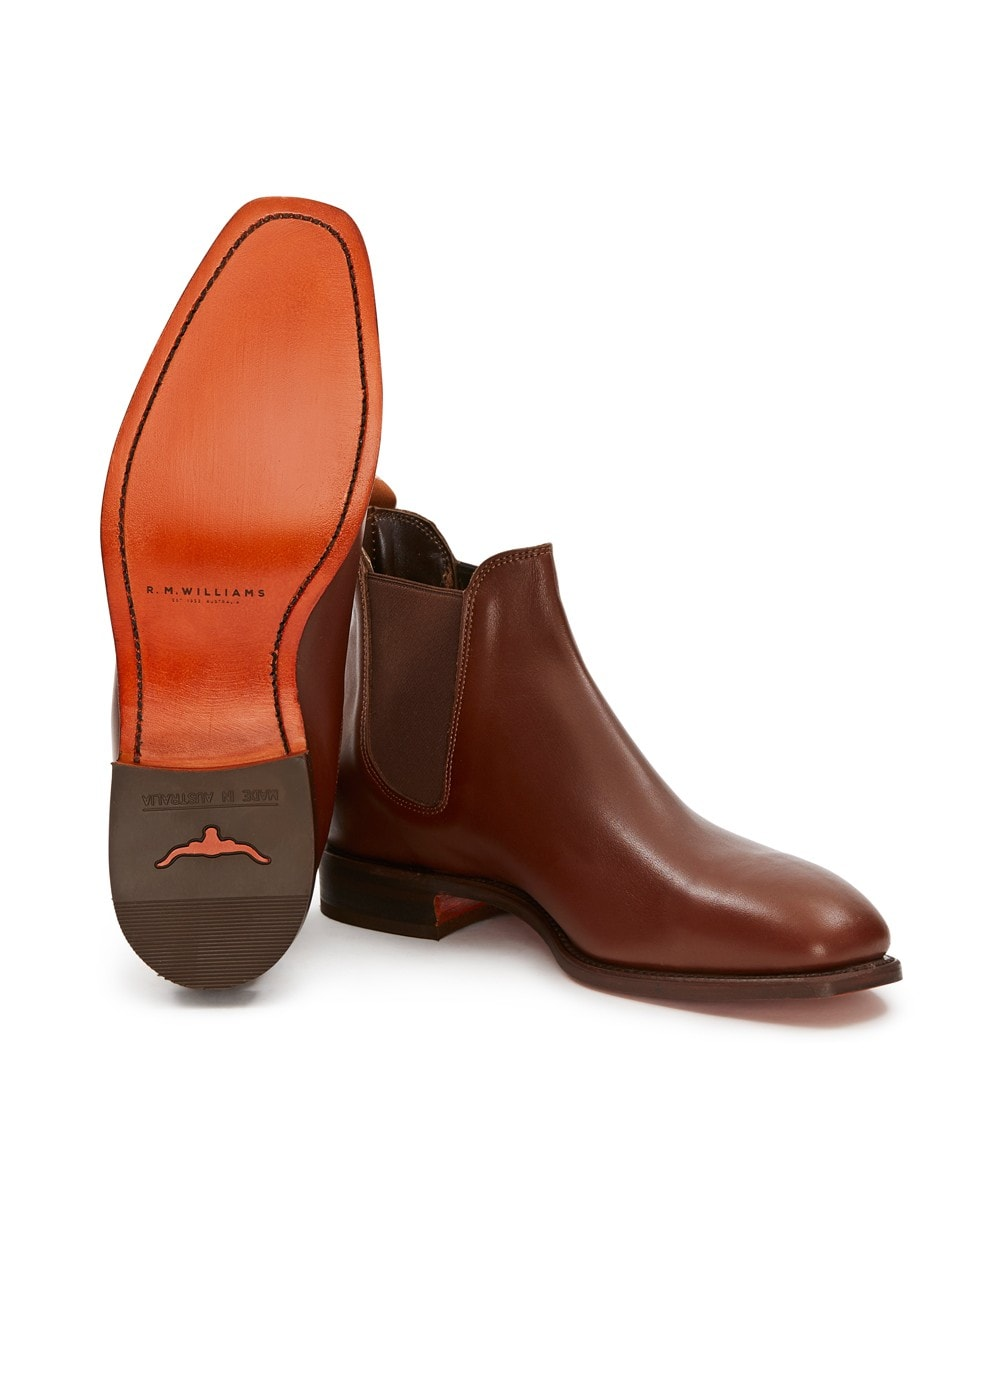 RM Williams Sydney Boots - Mens from A